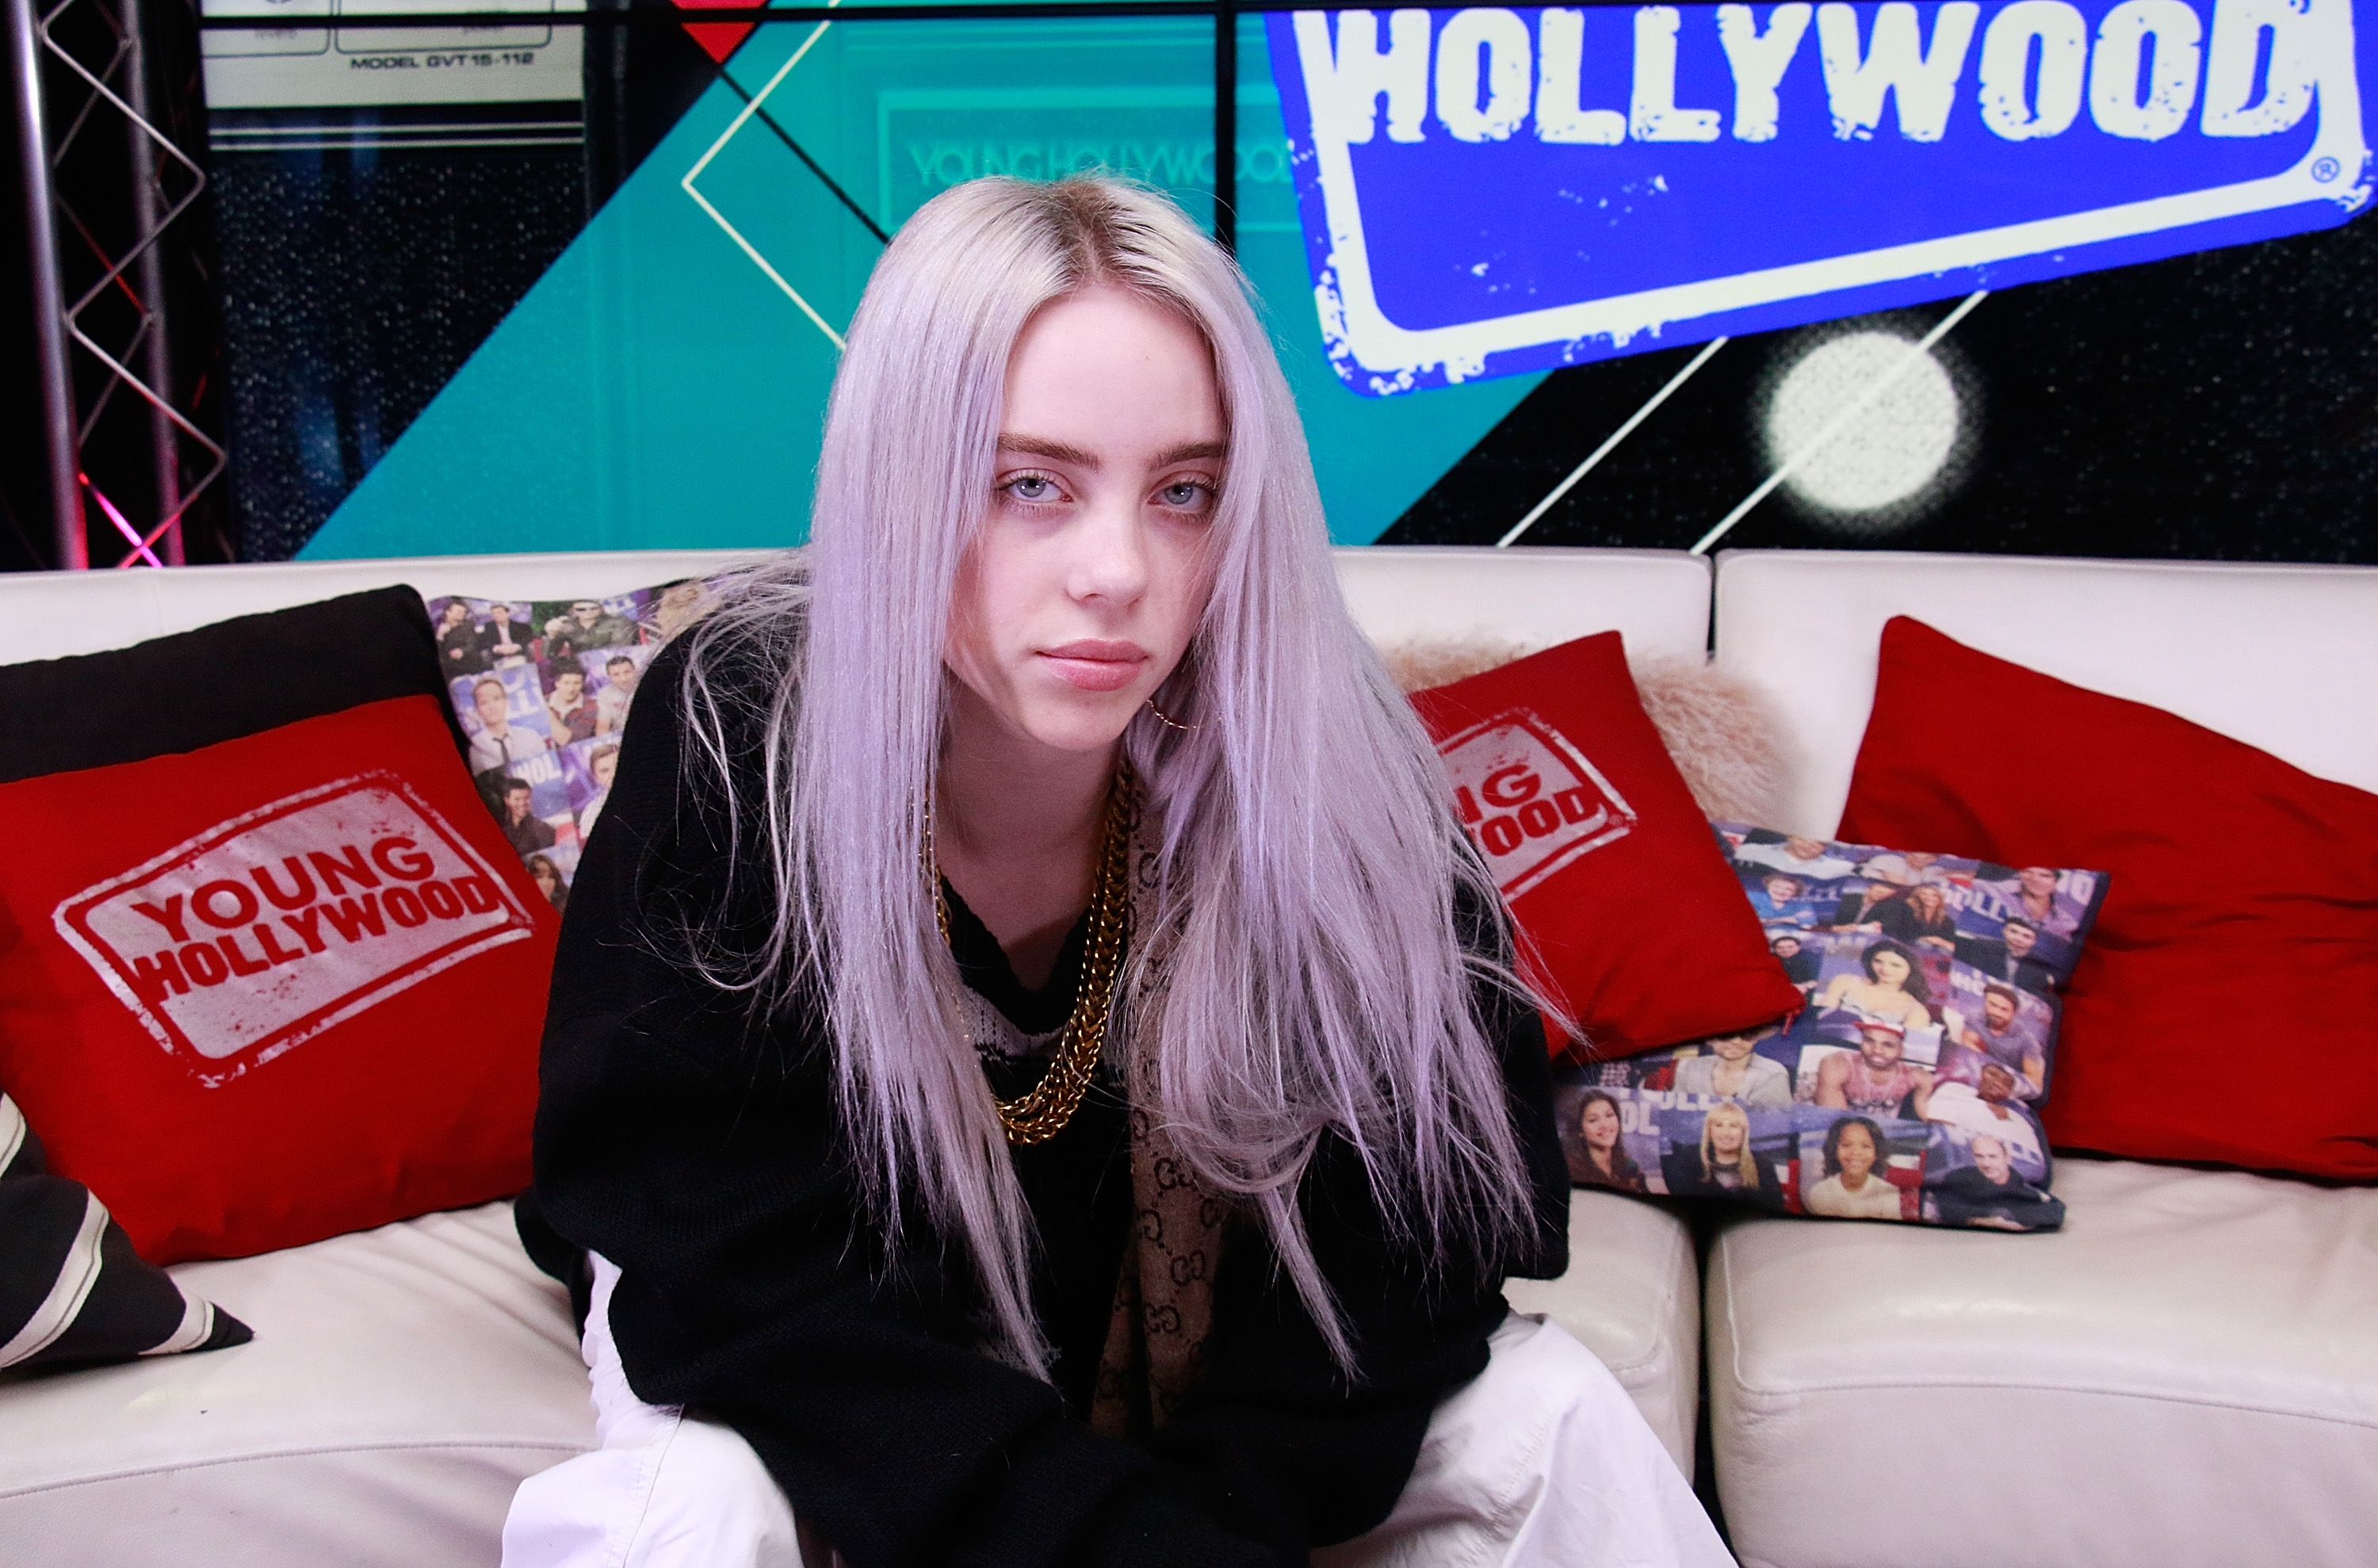 LOS ANGELES, CA - September 27: (EXCLUSIVE COVERAGE) Billie Eilish visits the Young Hollywood Studio on September 27, 2017 in Los Angeles, California. (Photo by Mary Clavering/Young Hollywood/Getty Images)